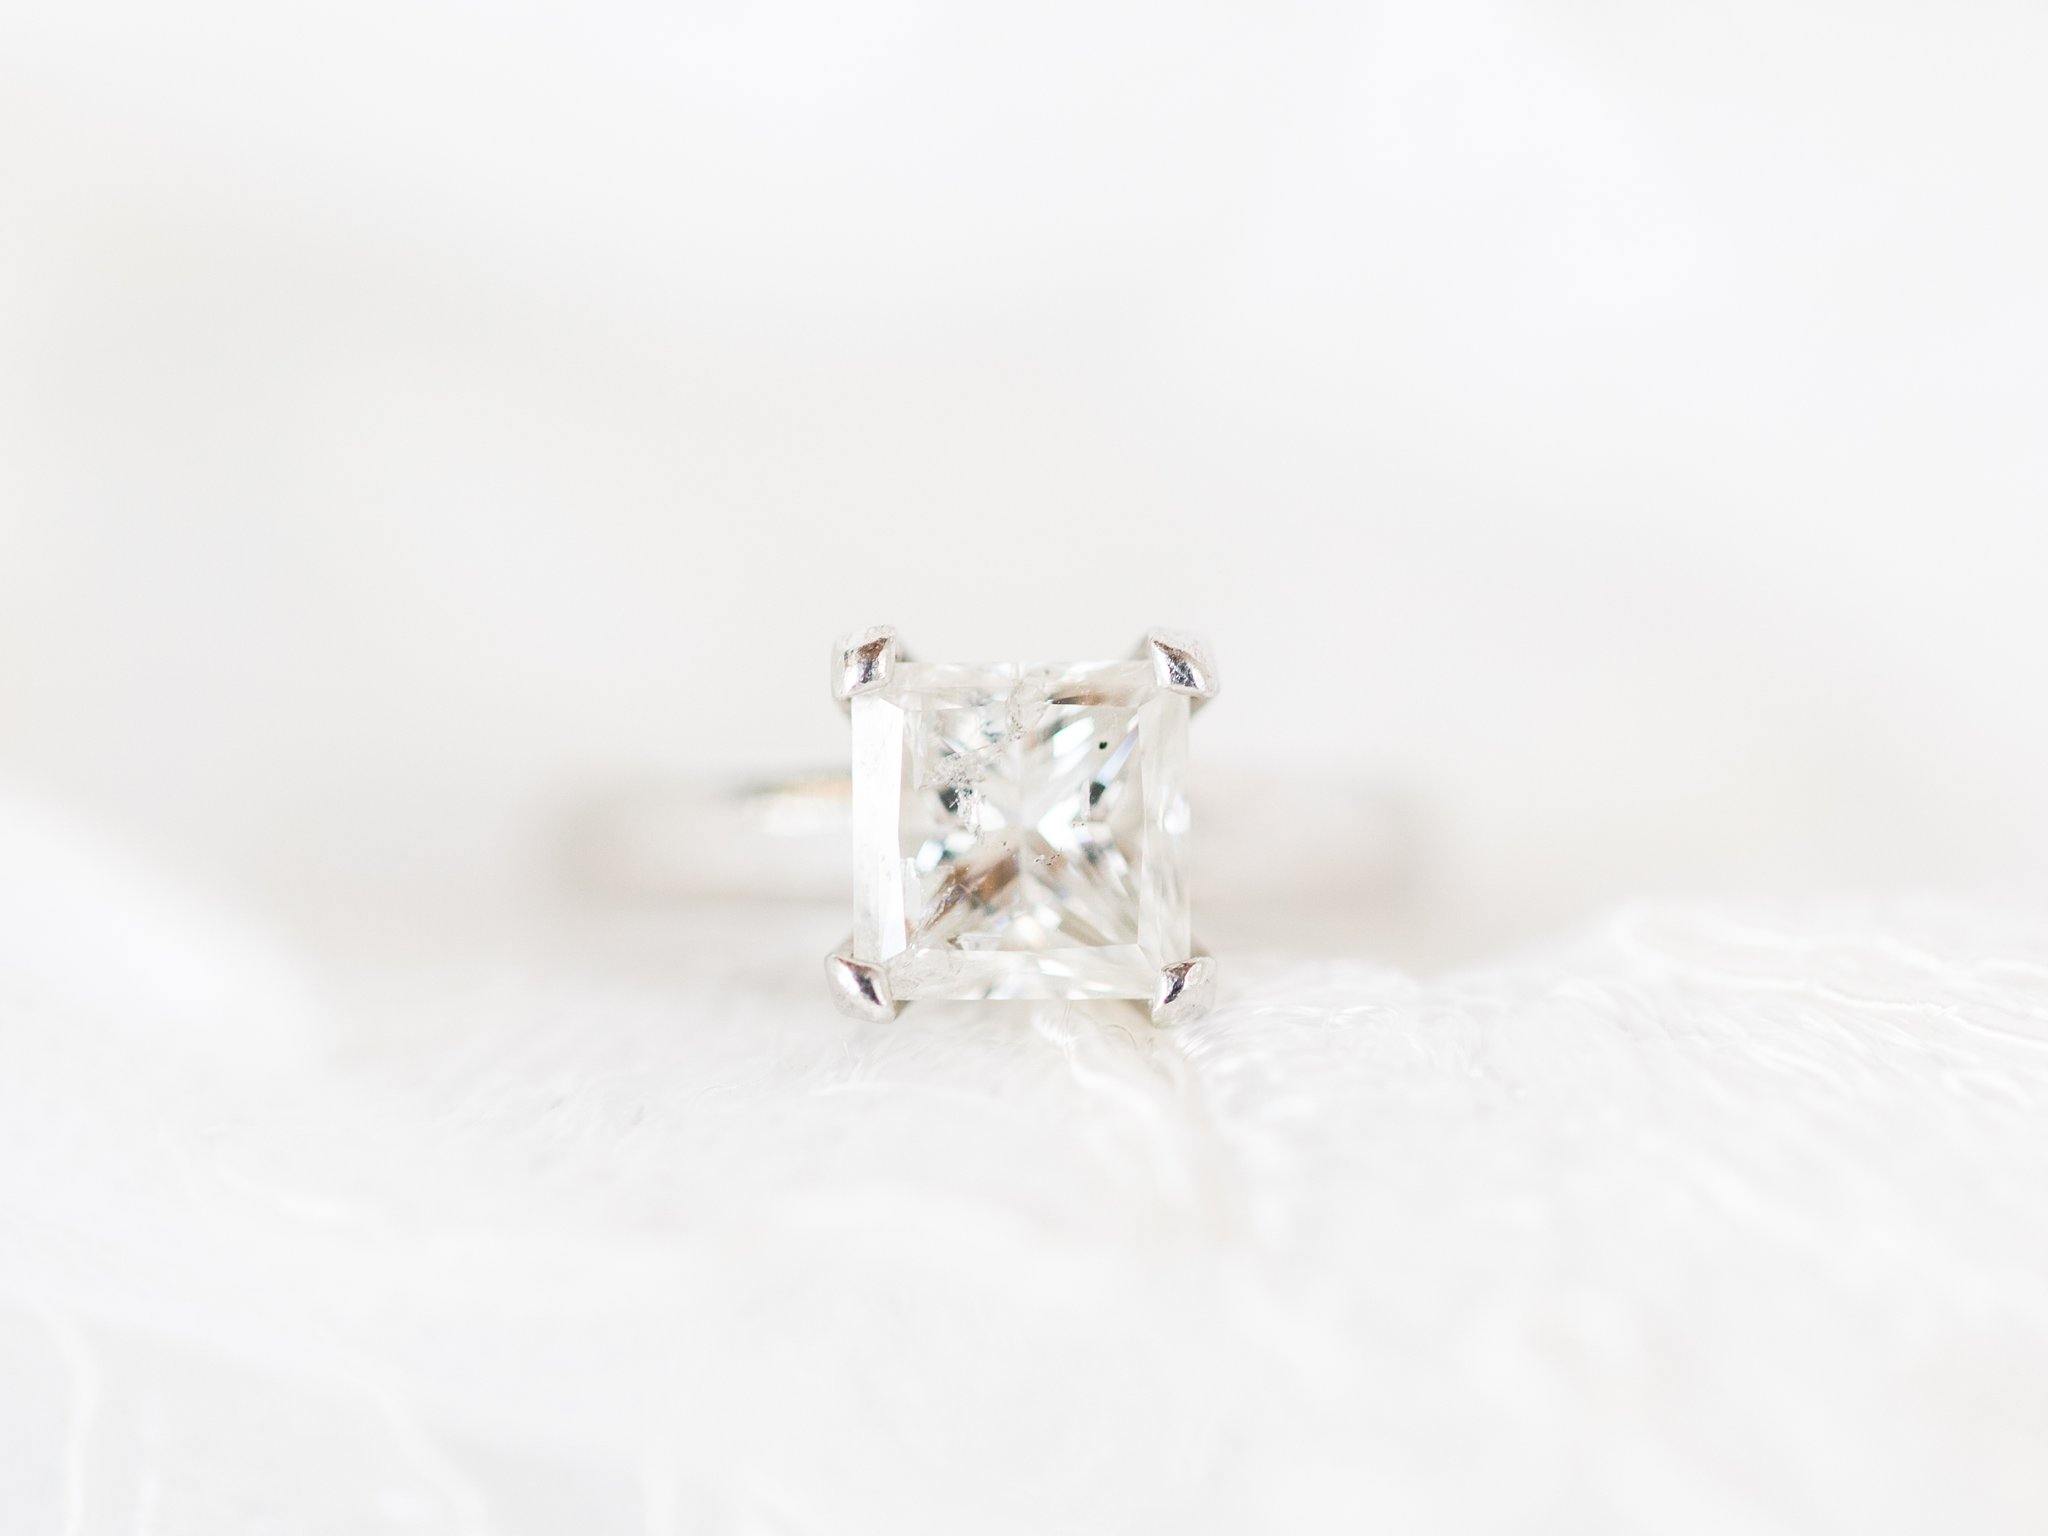 Square cut diamond ring, simple ring, sparkly, four pronged, Private Estate Wedding Photos, Amy Pinder Photography